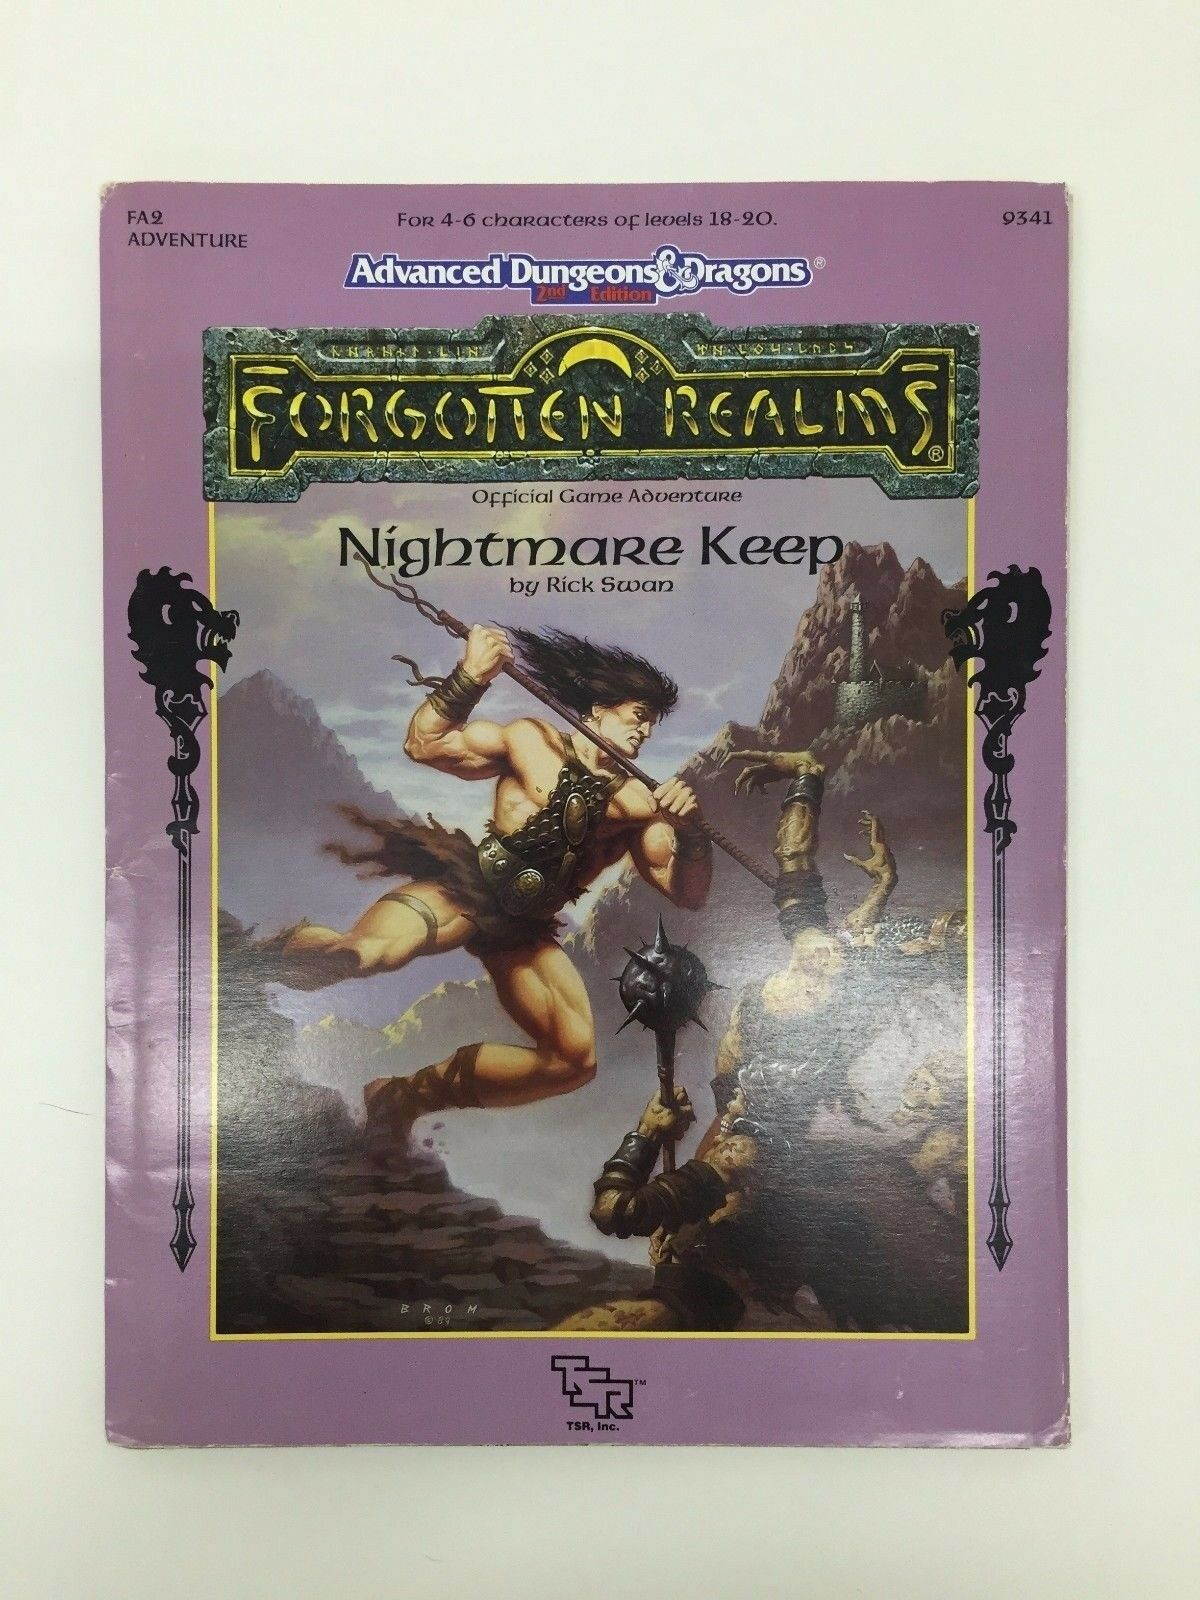 TSR ADVANCED DUNGEONS & DRAGONS FORGOTTEN REALMS NIGHTMARE KEEP FA2 9341 1991